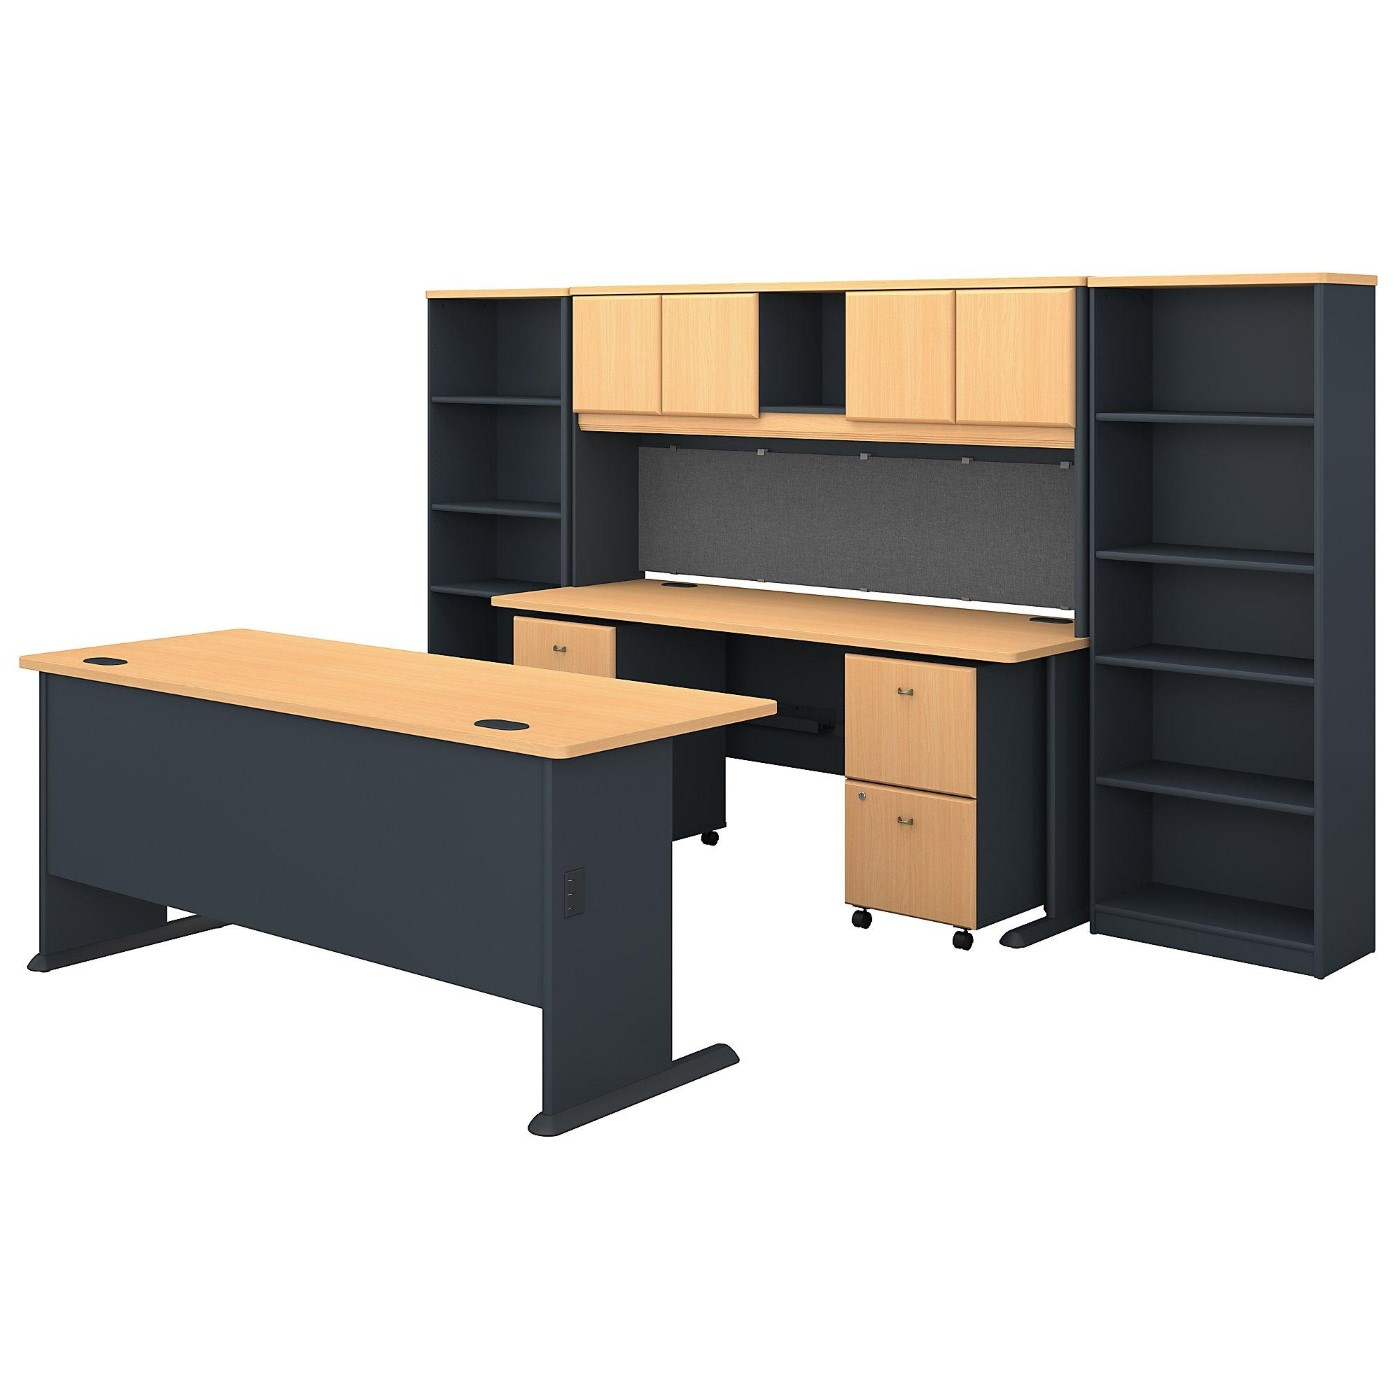 BUSH BUSINESS FURNITURE SERIES A 72W DESK WITH CREDENZA, HUTCH, BOOKCASES AND STORAGE. FREE SHIPPING  VIDEO BELOW.  SALE DEDUCT 10% MORE ENTER '10percent' IN COUPON CODE BOX WHILE CHECKING OUT.